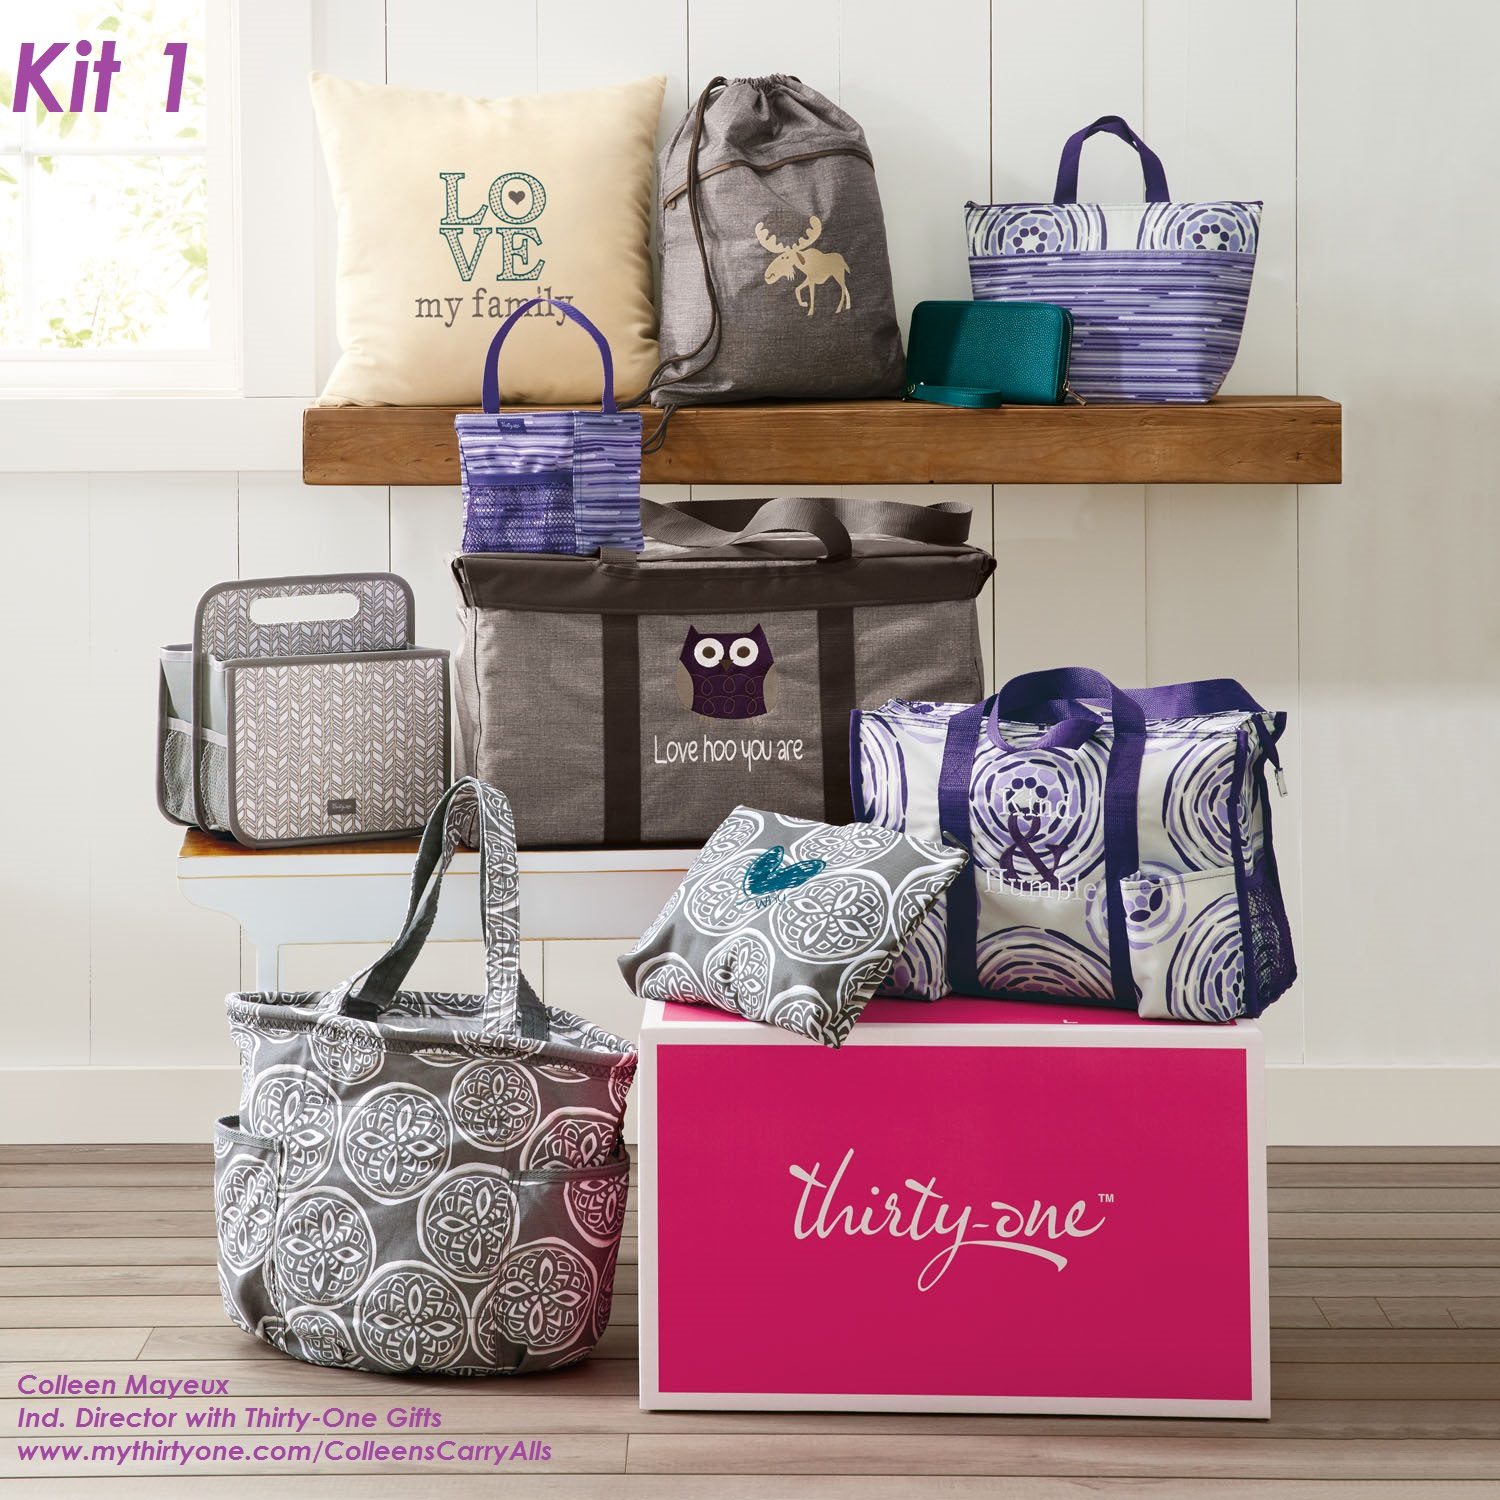 Join Thirty-One Gifts – Colleen Mayeux, Ind. Director with Thirty-One Gifts